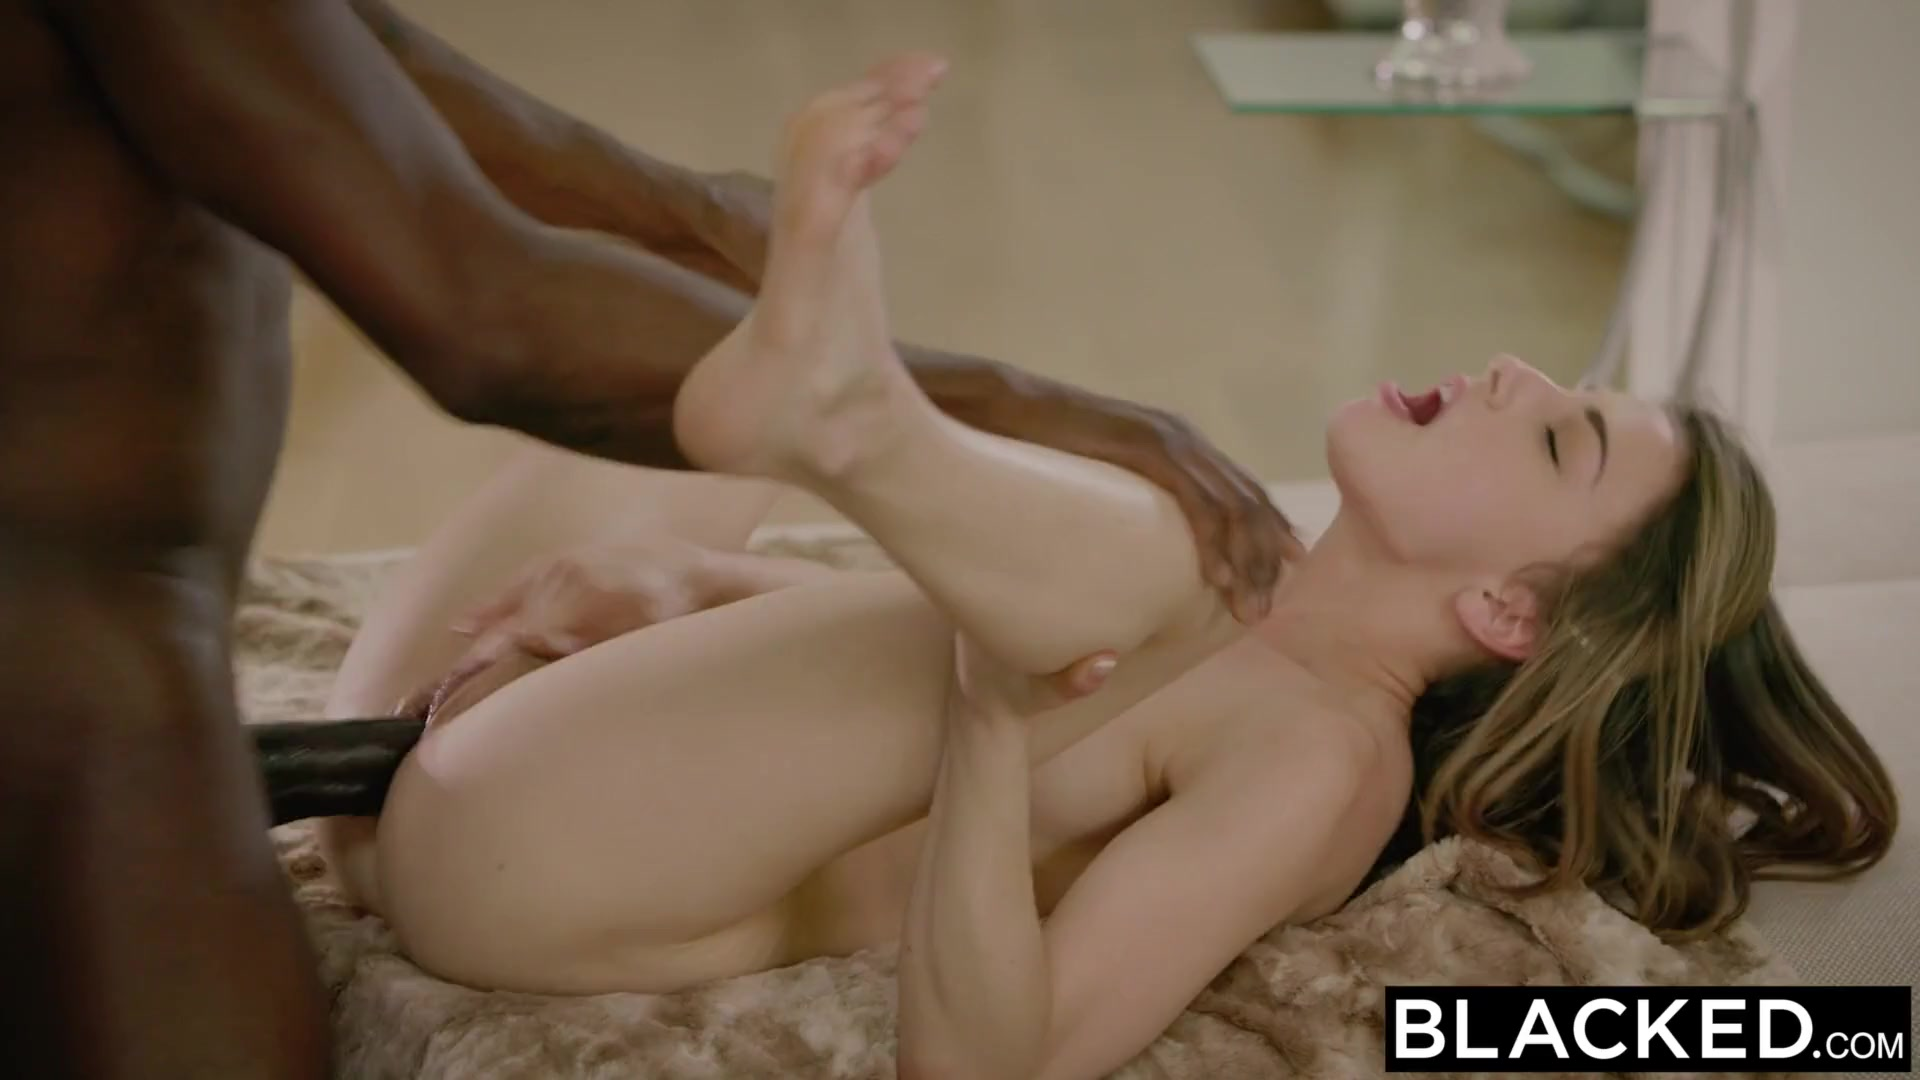 Piper perri gives to fucke her hard in nice dress 3